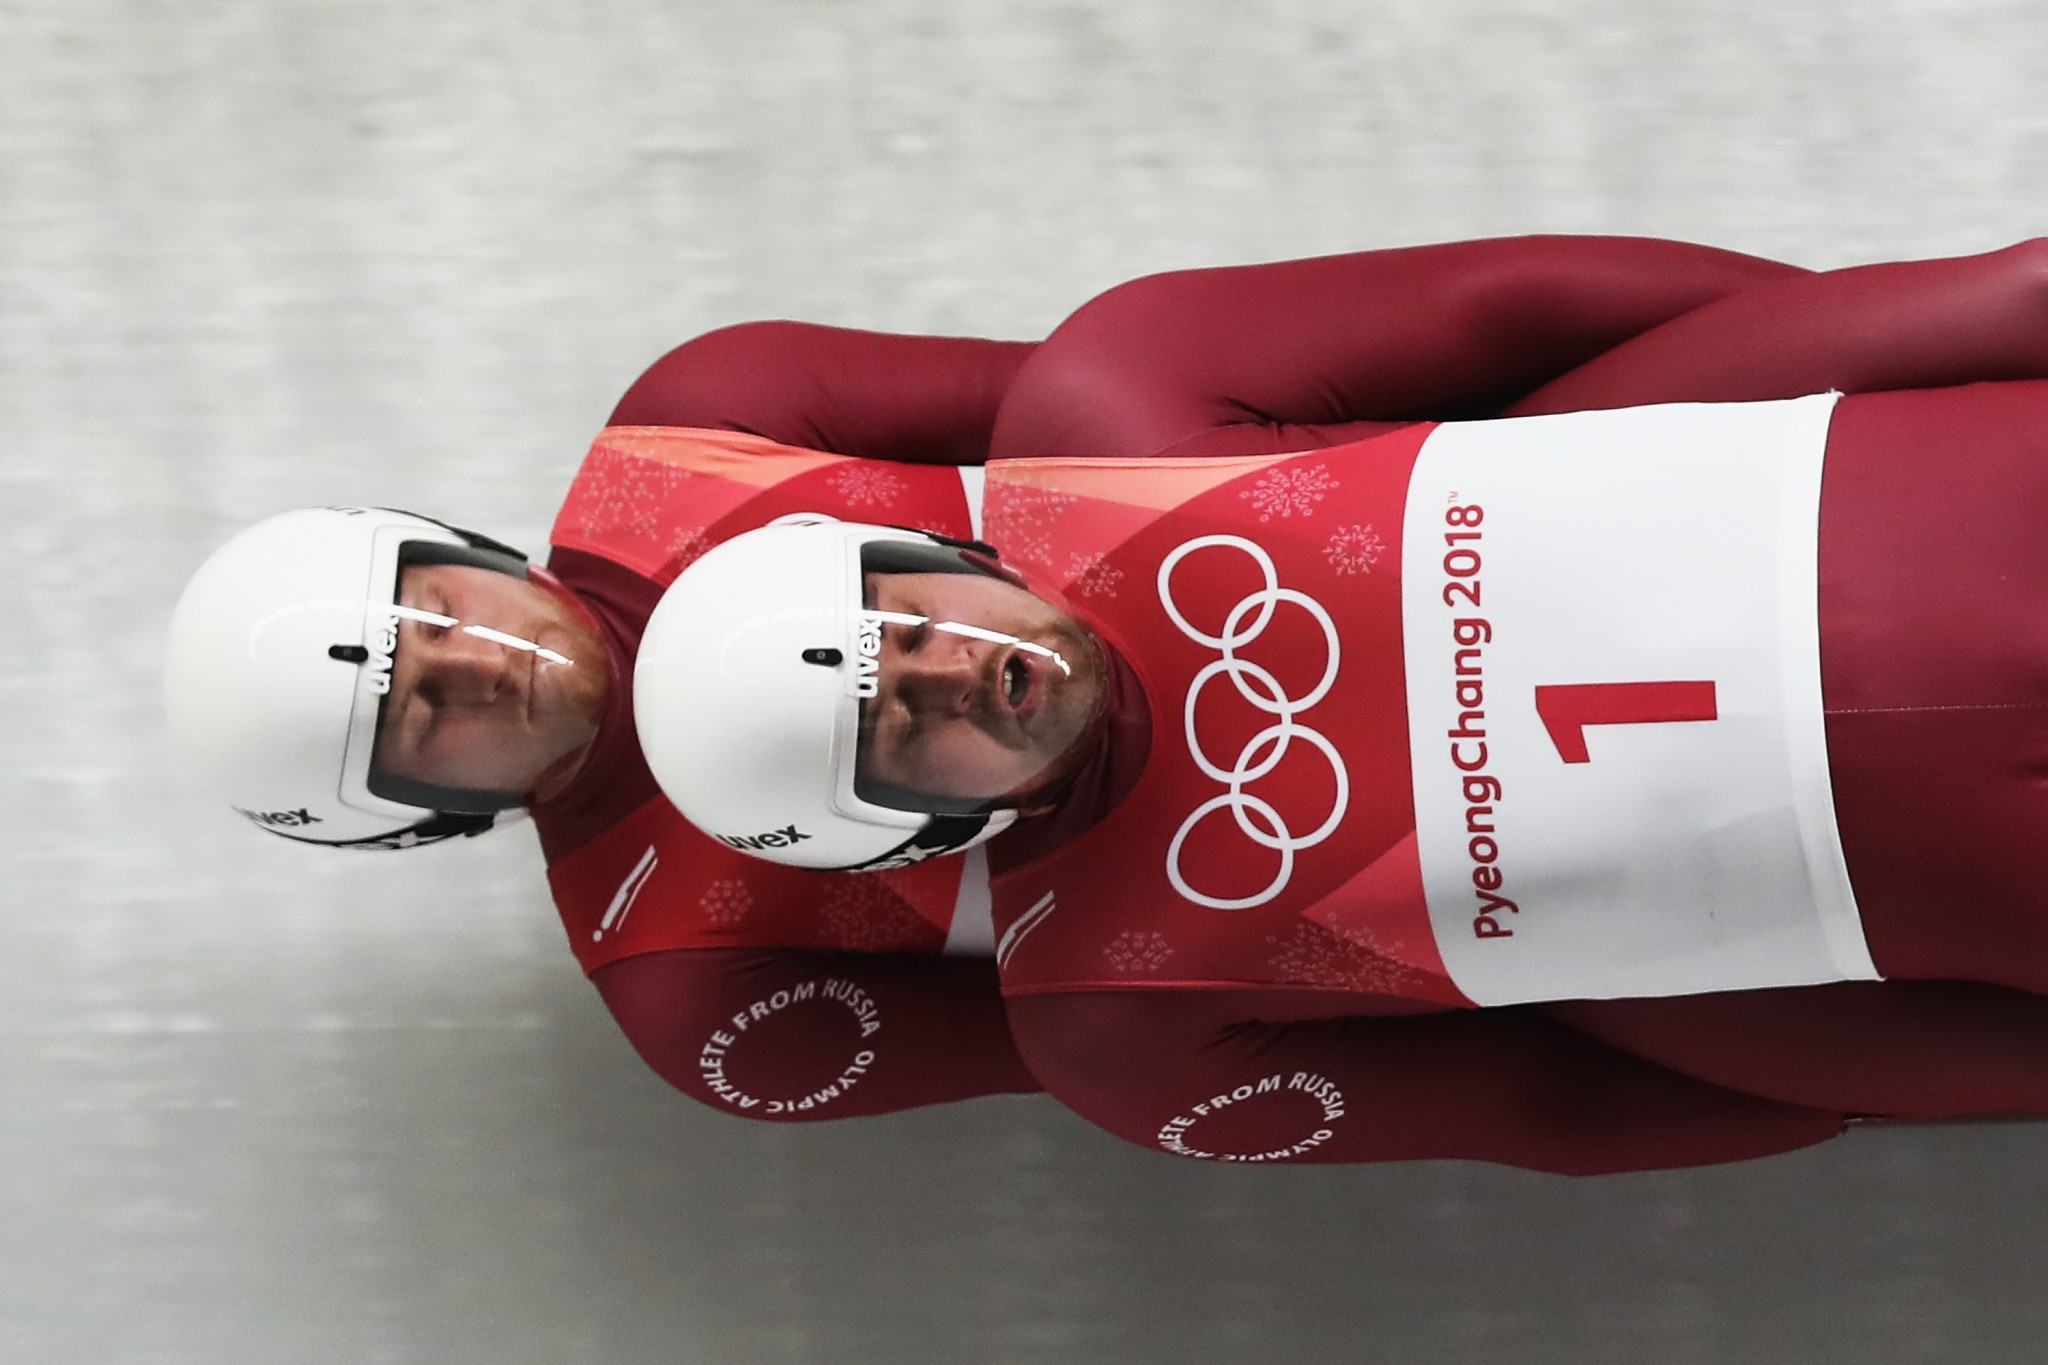 Vladislav Antonov, left, and Alexander Denisiev pulled out of the opening leg of the Luge World Cup after the former contracted coronavirus ©Getty Images